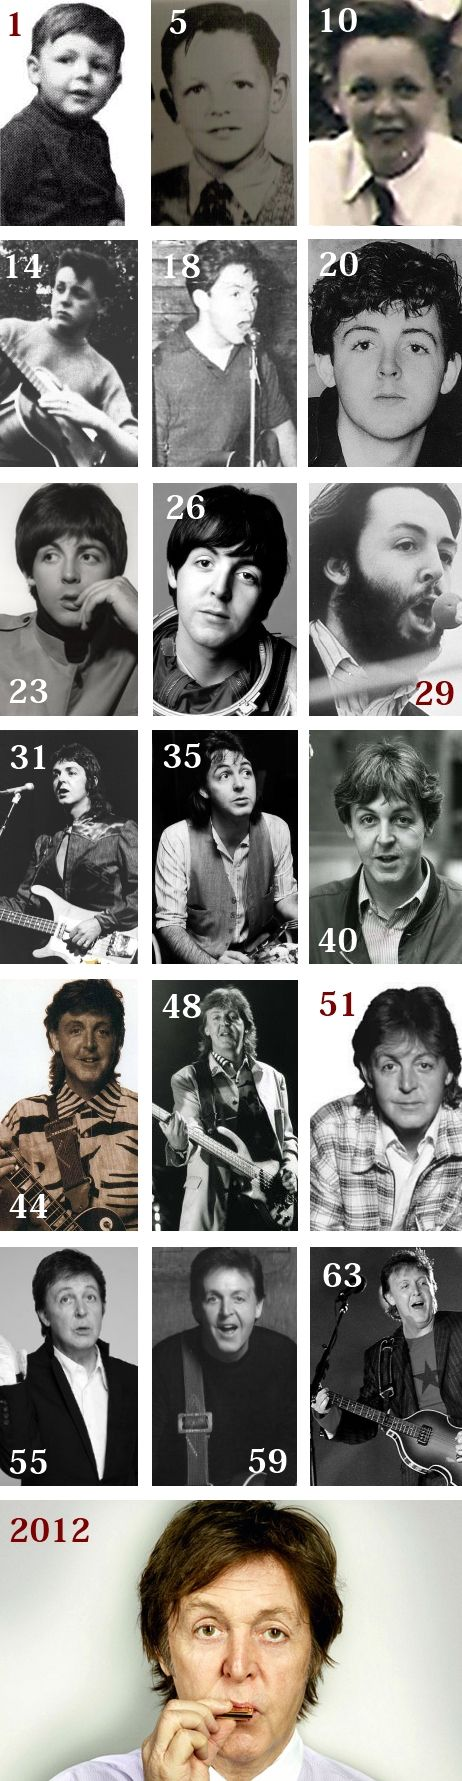 """Paul McCartney calendar ~ life in pictures."" -- the one labeled ""26"" was actually taken in 1965 when he was 23....if it is true that he was replaced in late 1966, as many believe, then all of the photos from ""29"" on are of the replacement Paul...."